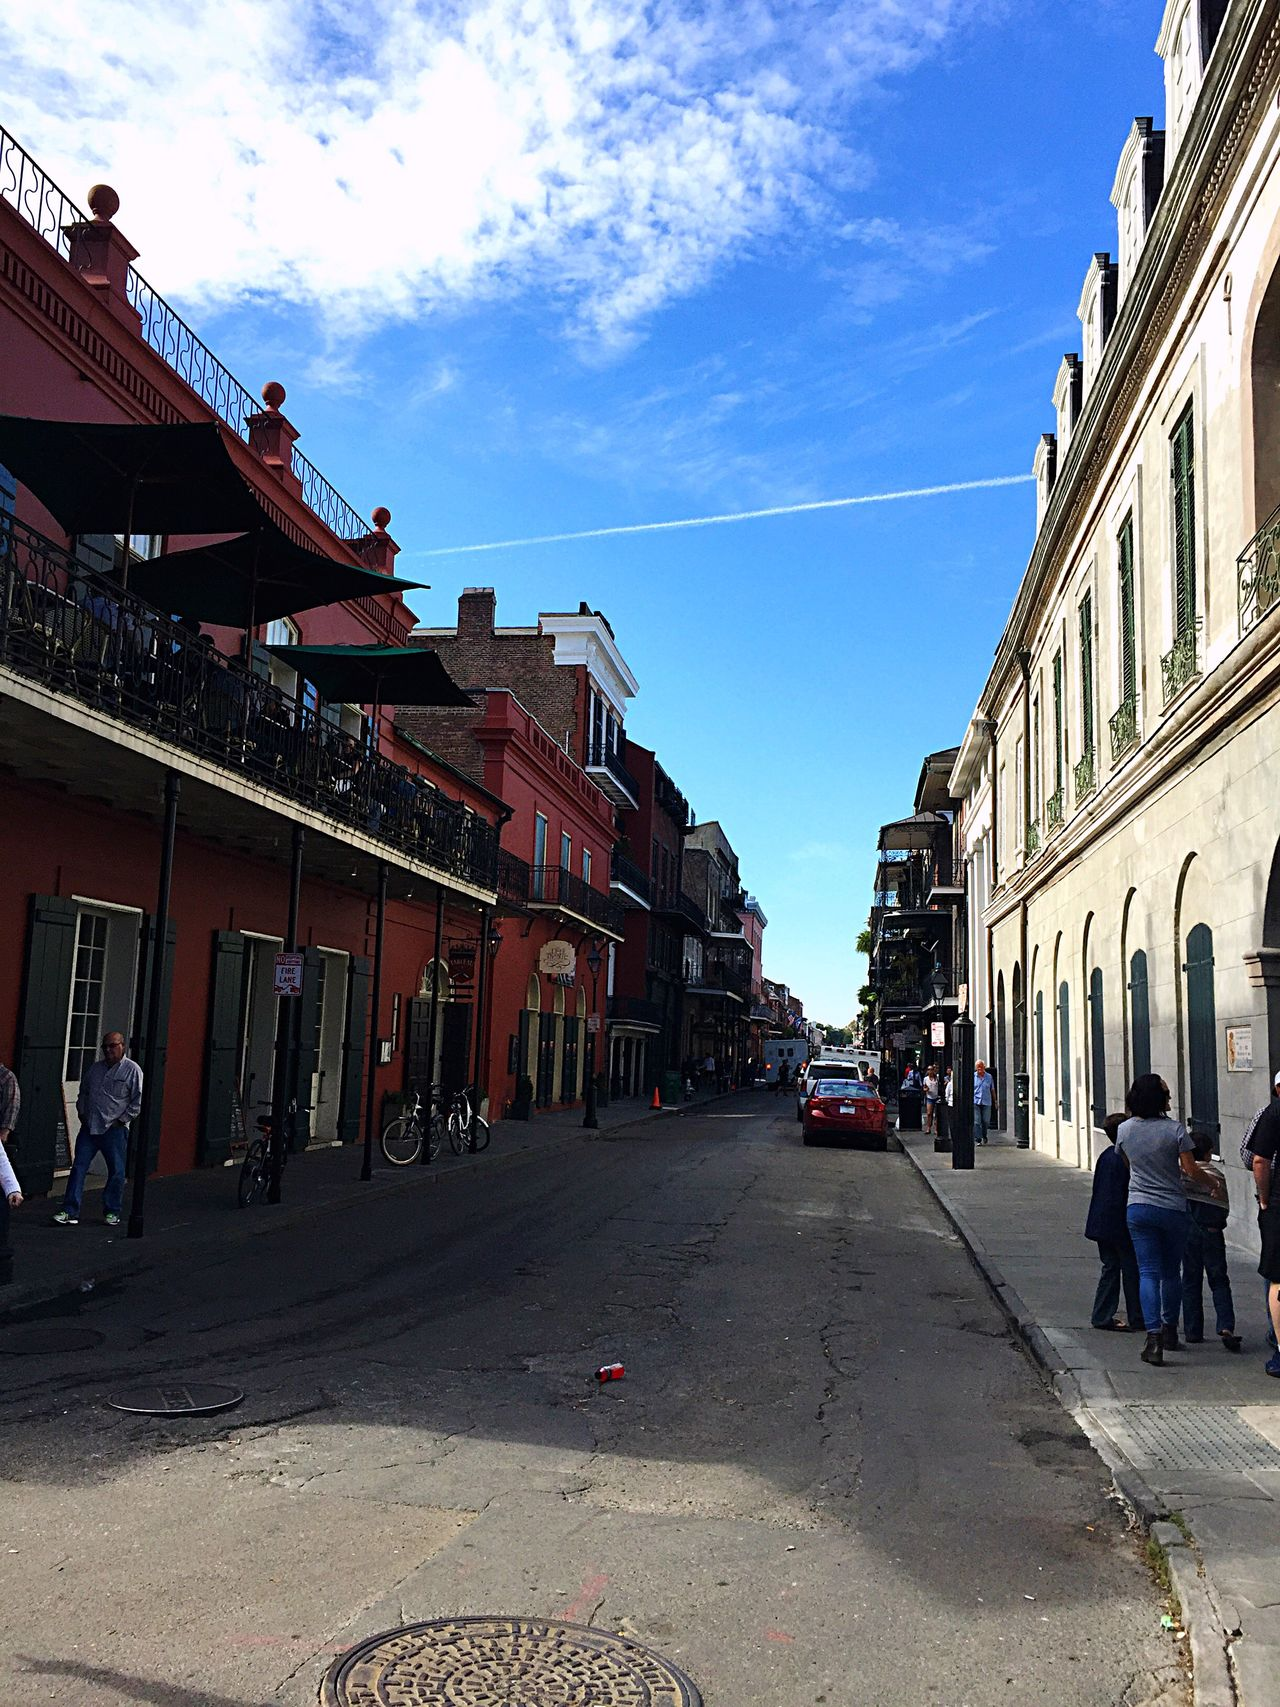 Building Exterior Architecture Sky Built Structure Street City Car Road Outdoors Transportation Land Vehicle Women Day Real People Cloud - Sky One Person Men Adults Only People Adult Jackson Square